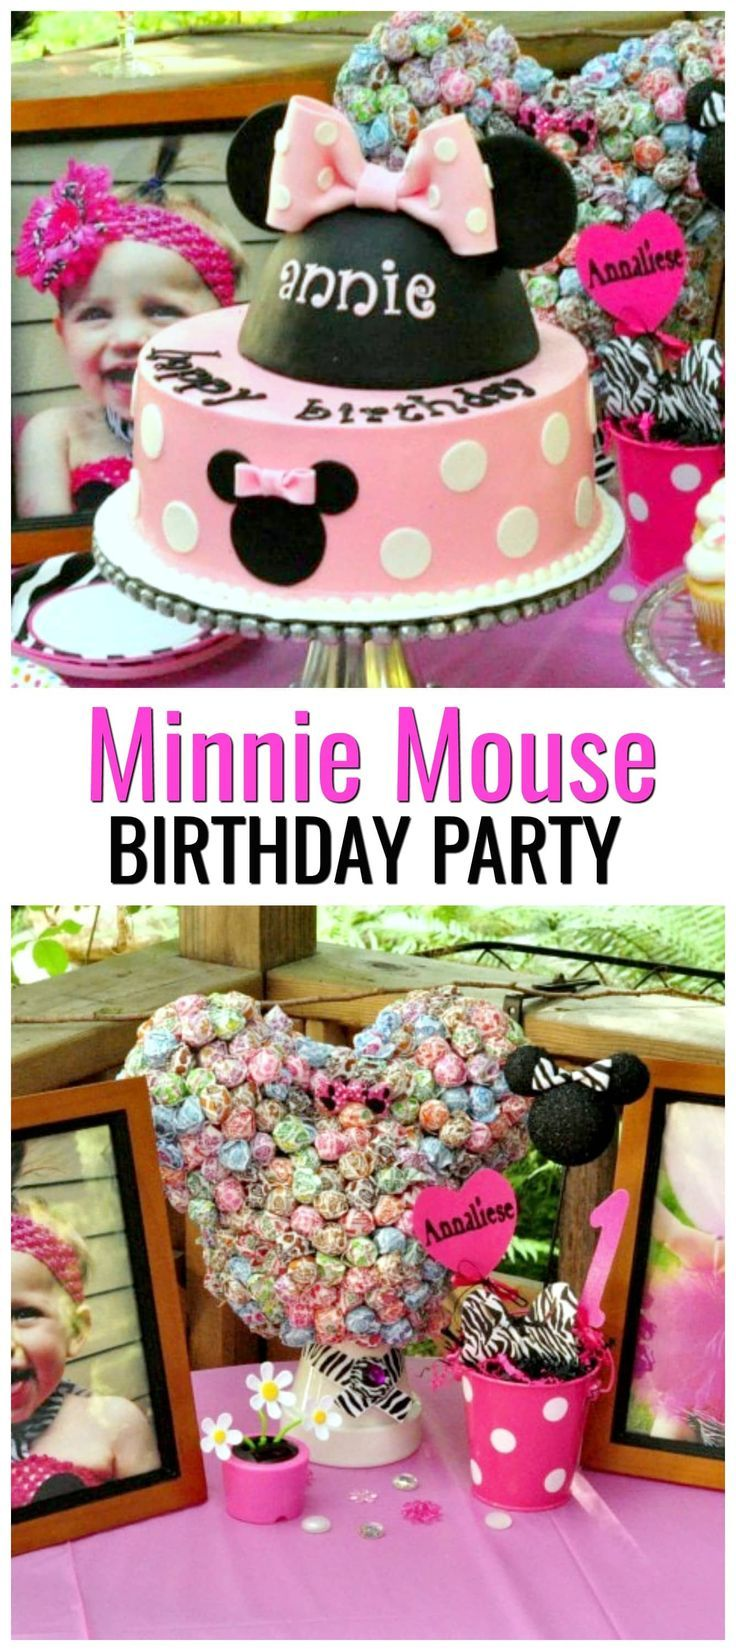 #MinnieMouseFirstBirthday How to Plan a Minnie Mouse First Birthday Party. Minnie Mouse First Birthday Party Favors and more Minnie Mouse First Birthday Party ideas. Minnie Mouse First Birthday Party Decorations ideas are also included in this post. #minniemousefirstbirthdaydecorations #minniemousebirthday #minniemouseparty